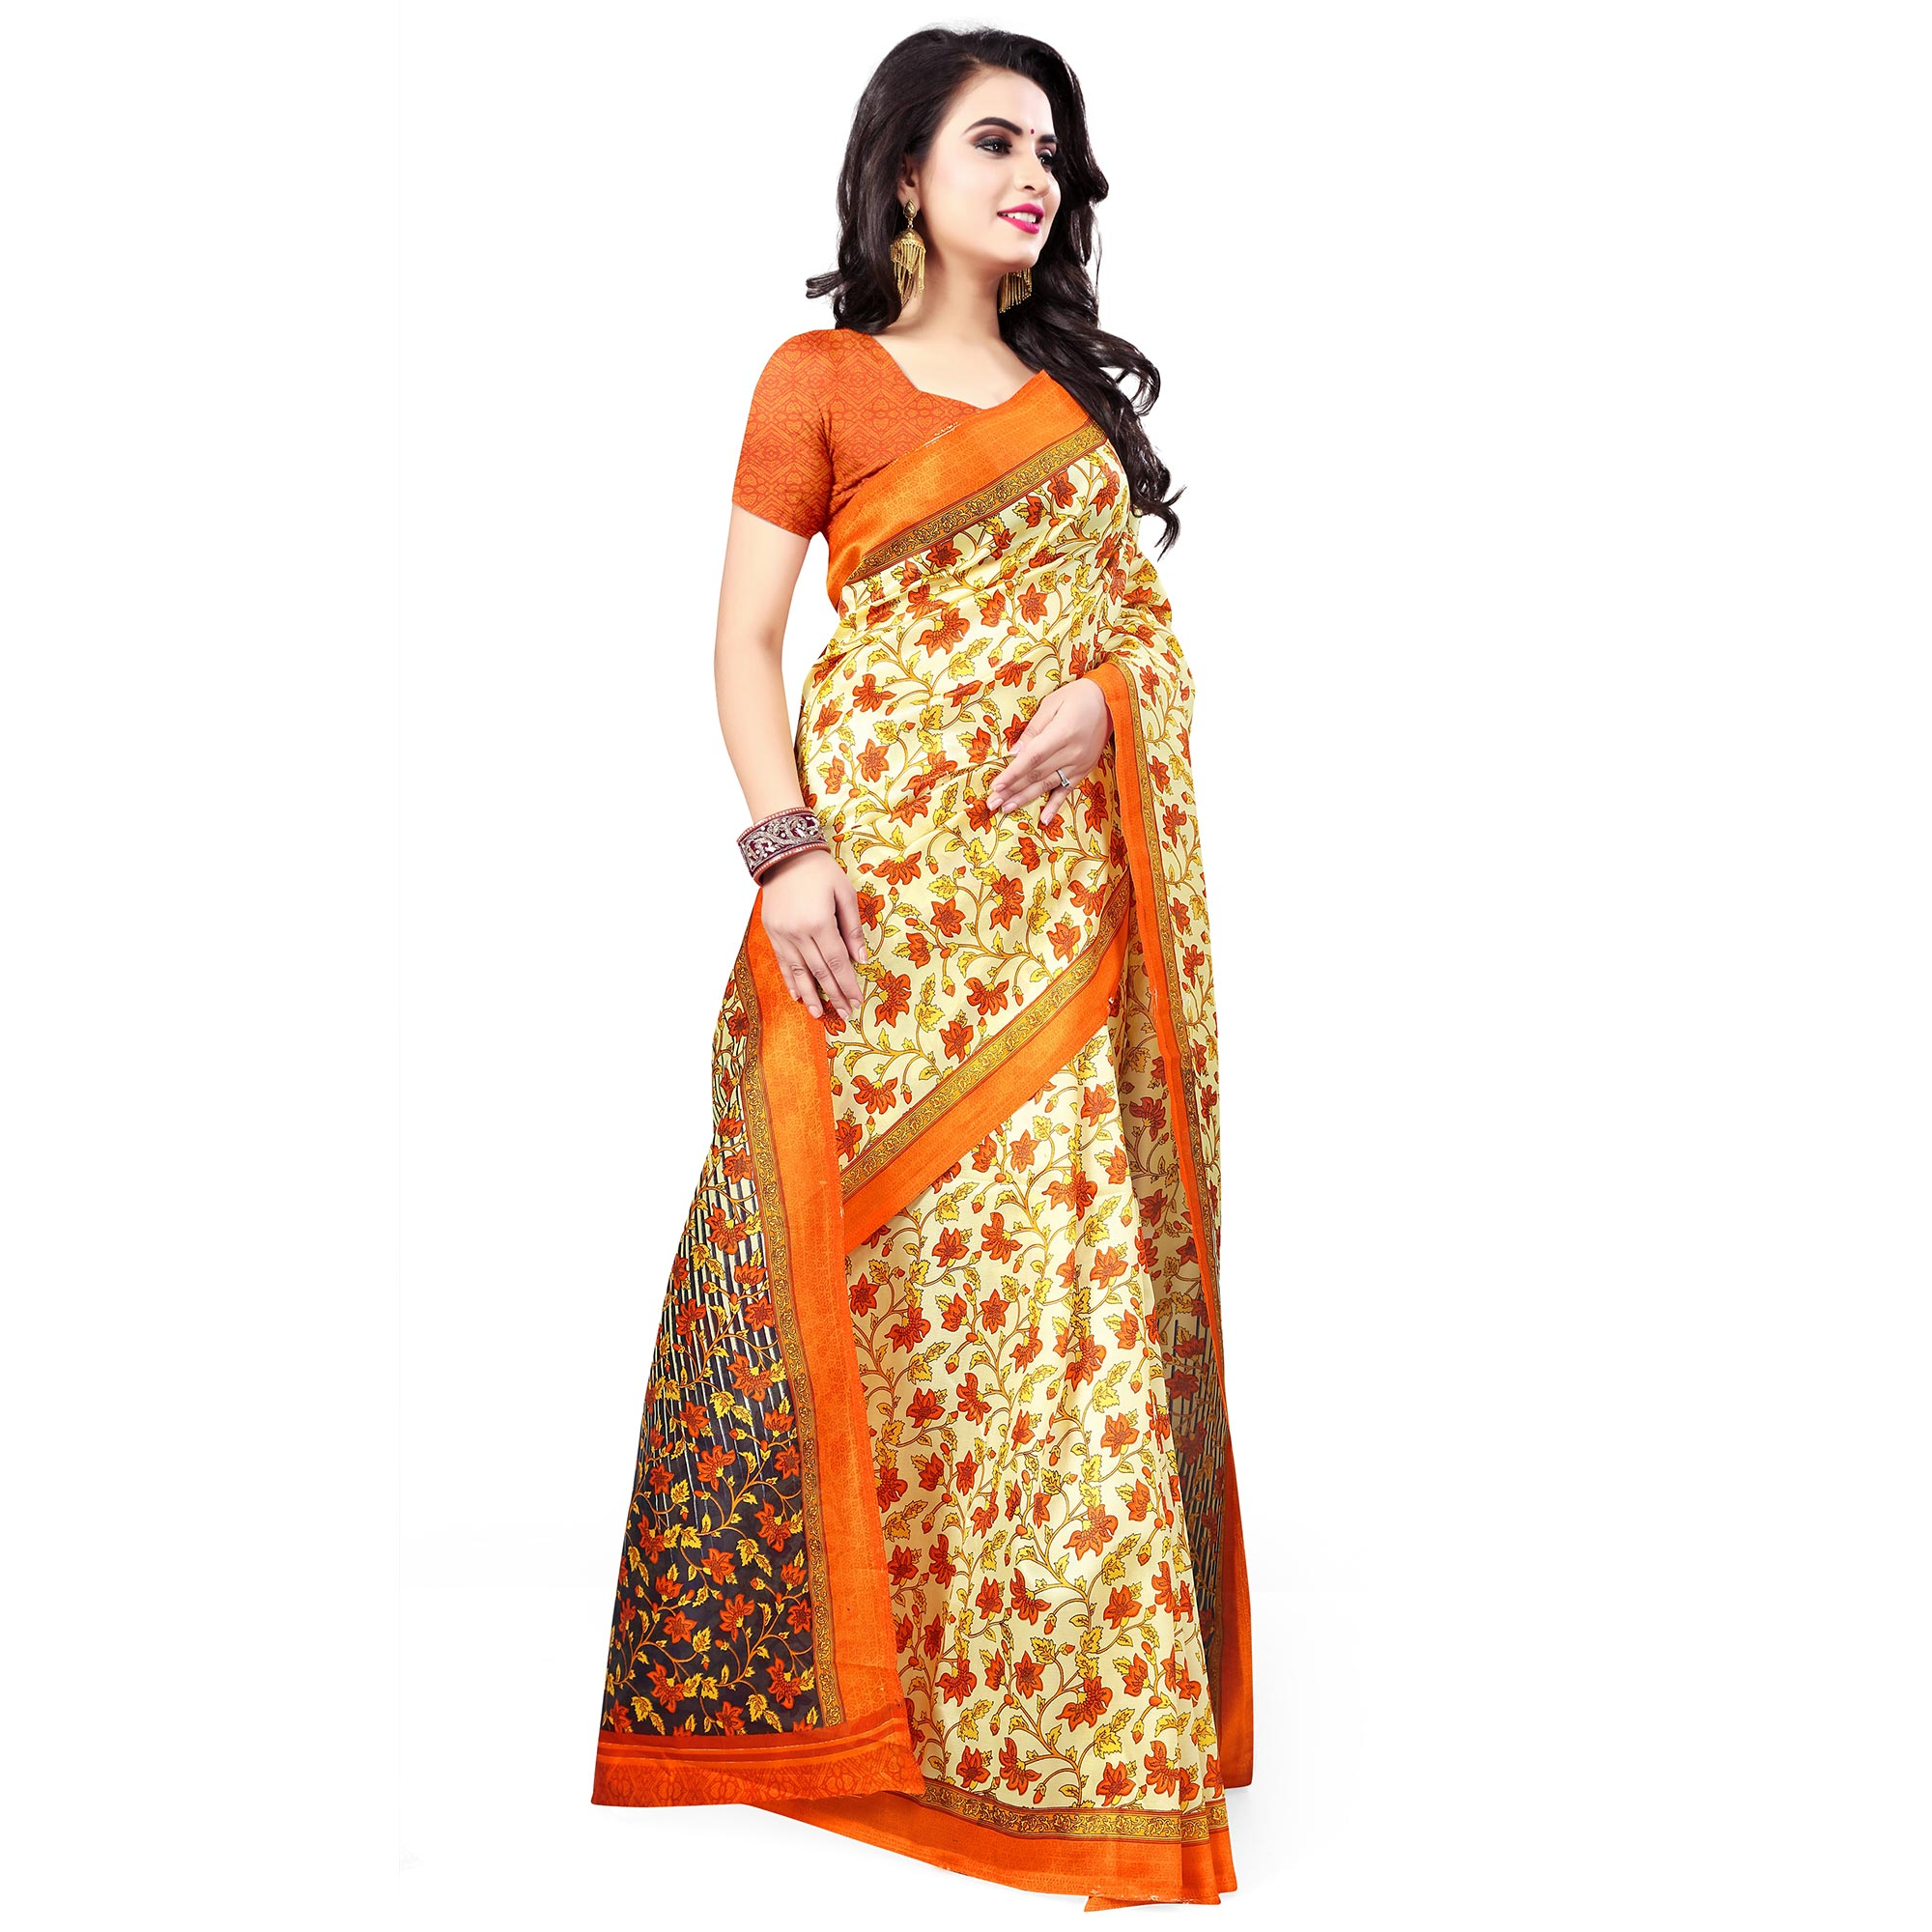 Unique Light Yellow Colored Casual Wear Printed Bhagalpuri Silk Saree